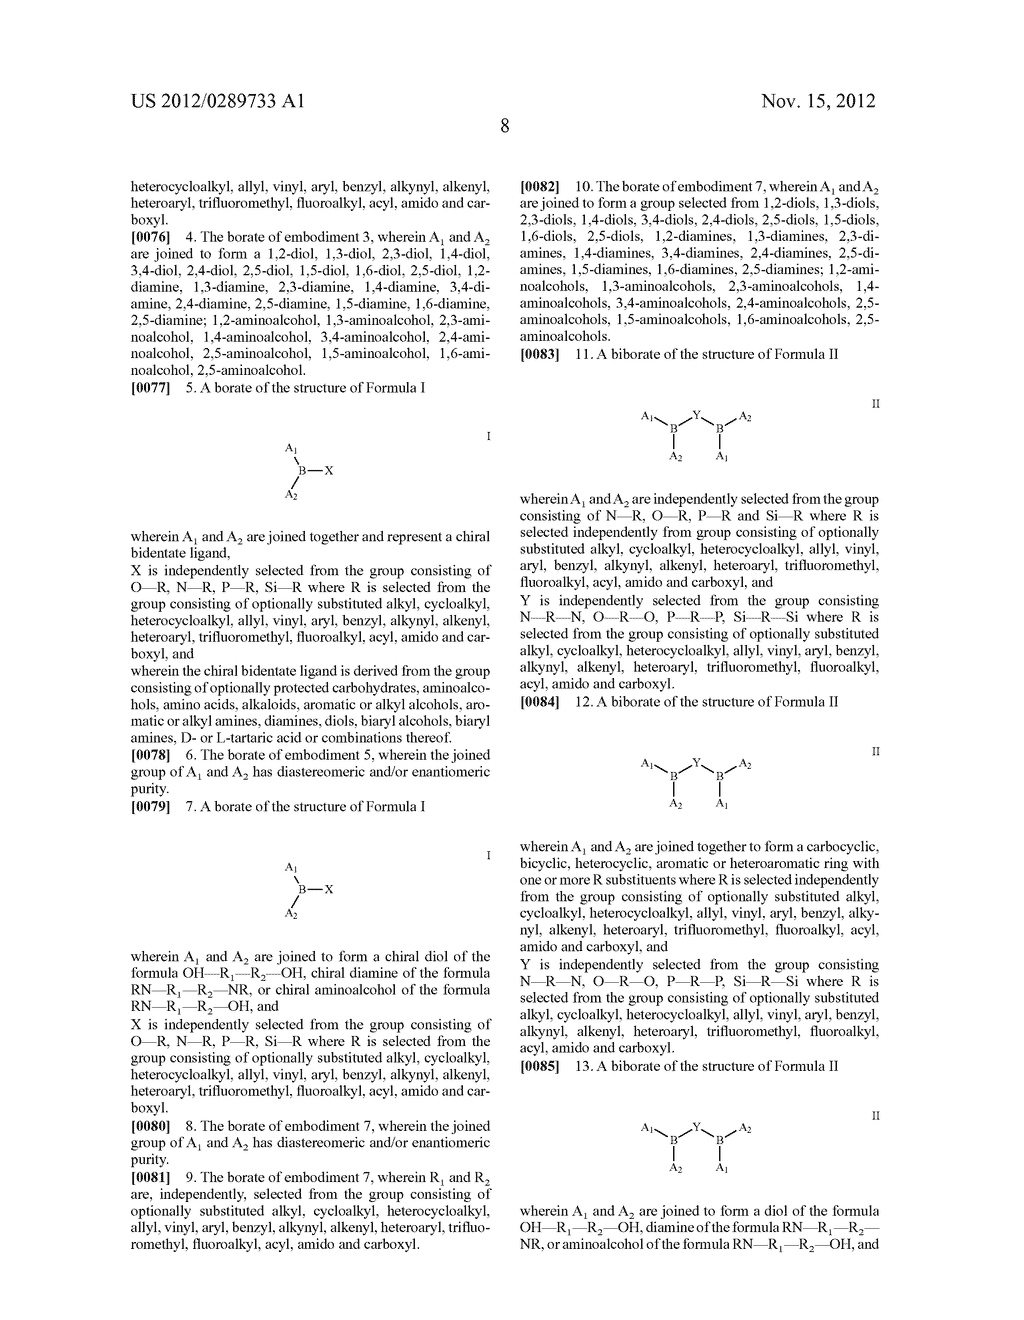 NOVEL BORATE DERIVATIVES AND THEIR APPLICATIONS - diagram, schematic, and image 09